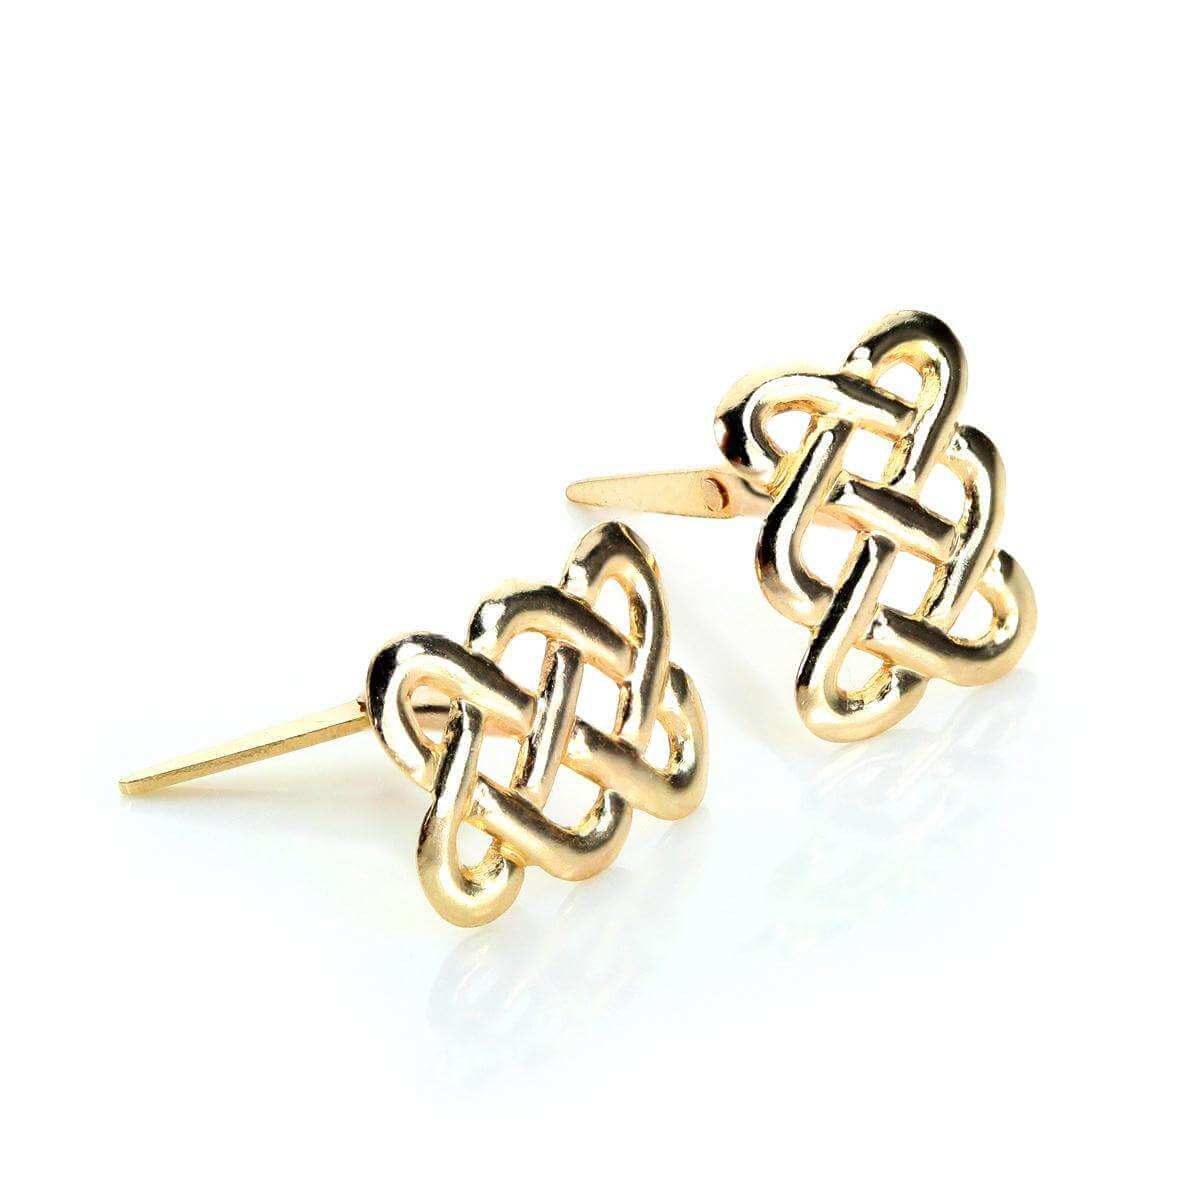 Andralok 9ct Yellow Gold Celtic Knot Stud Earrings